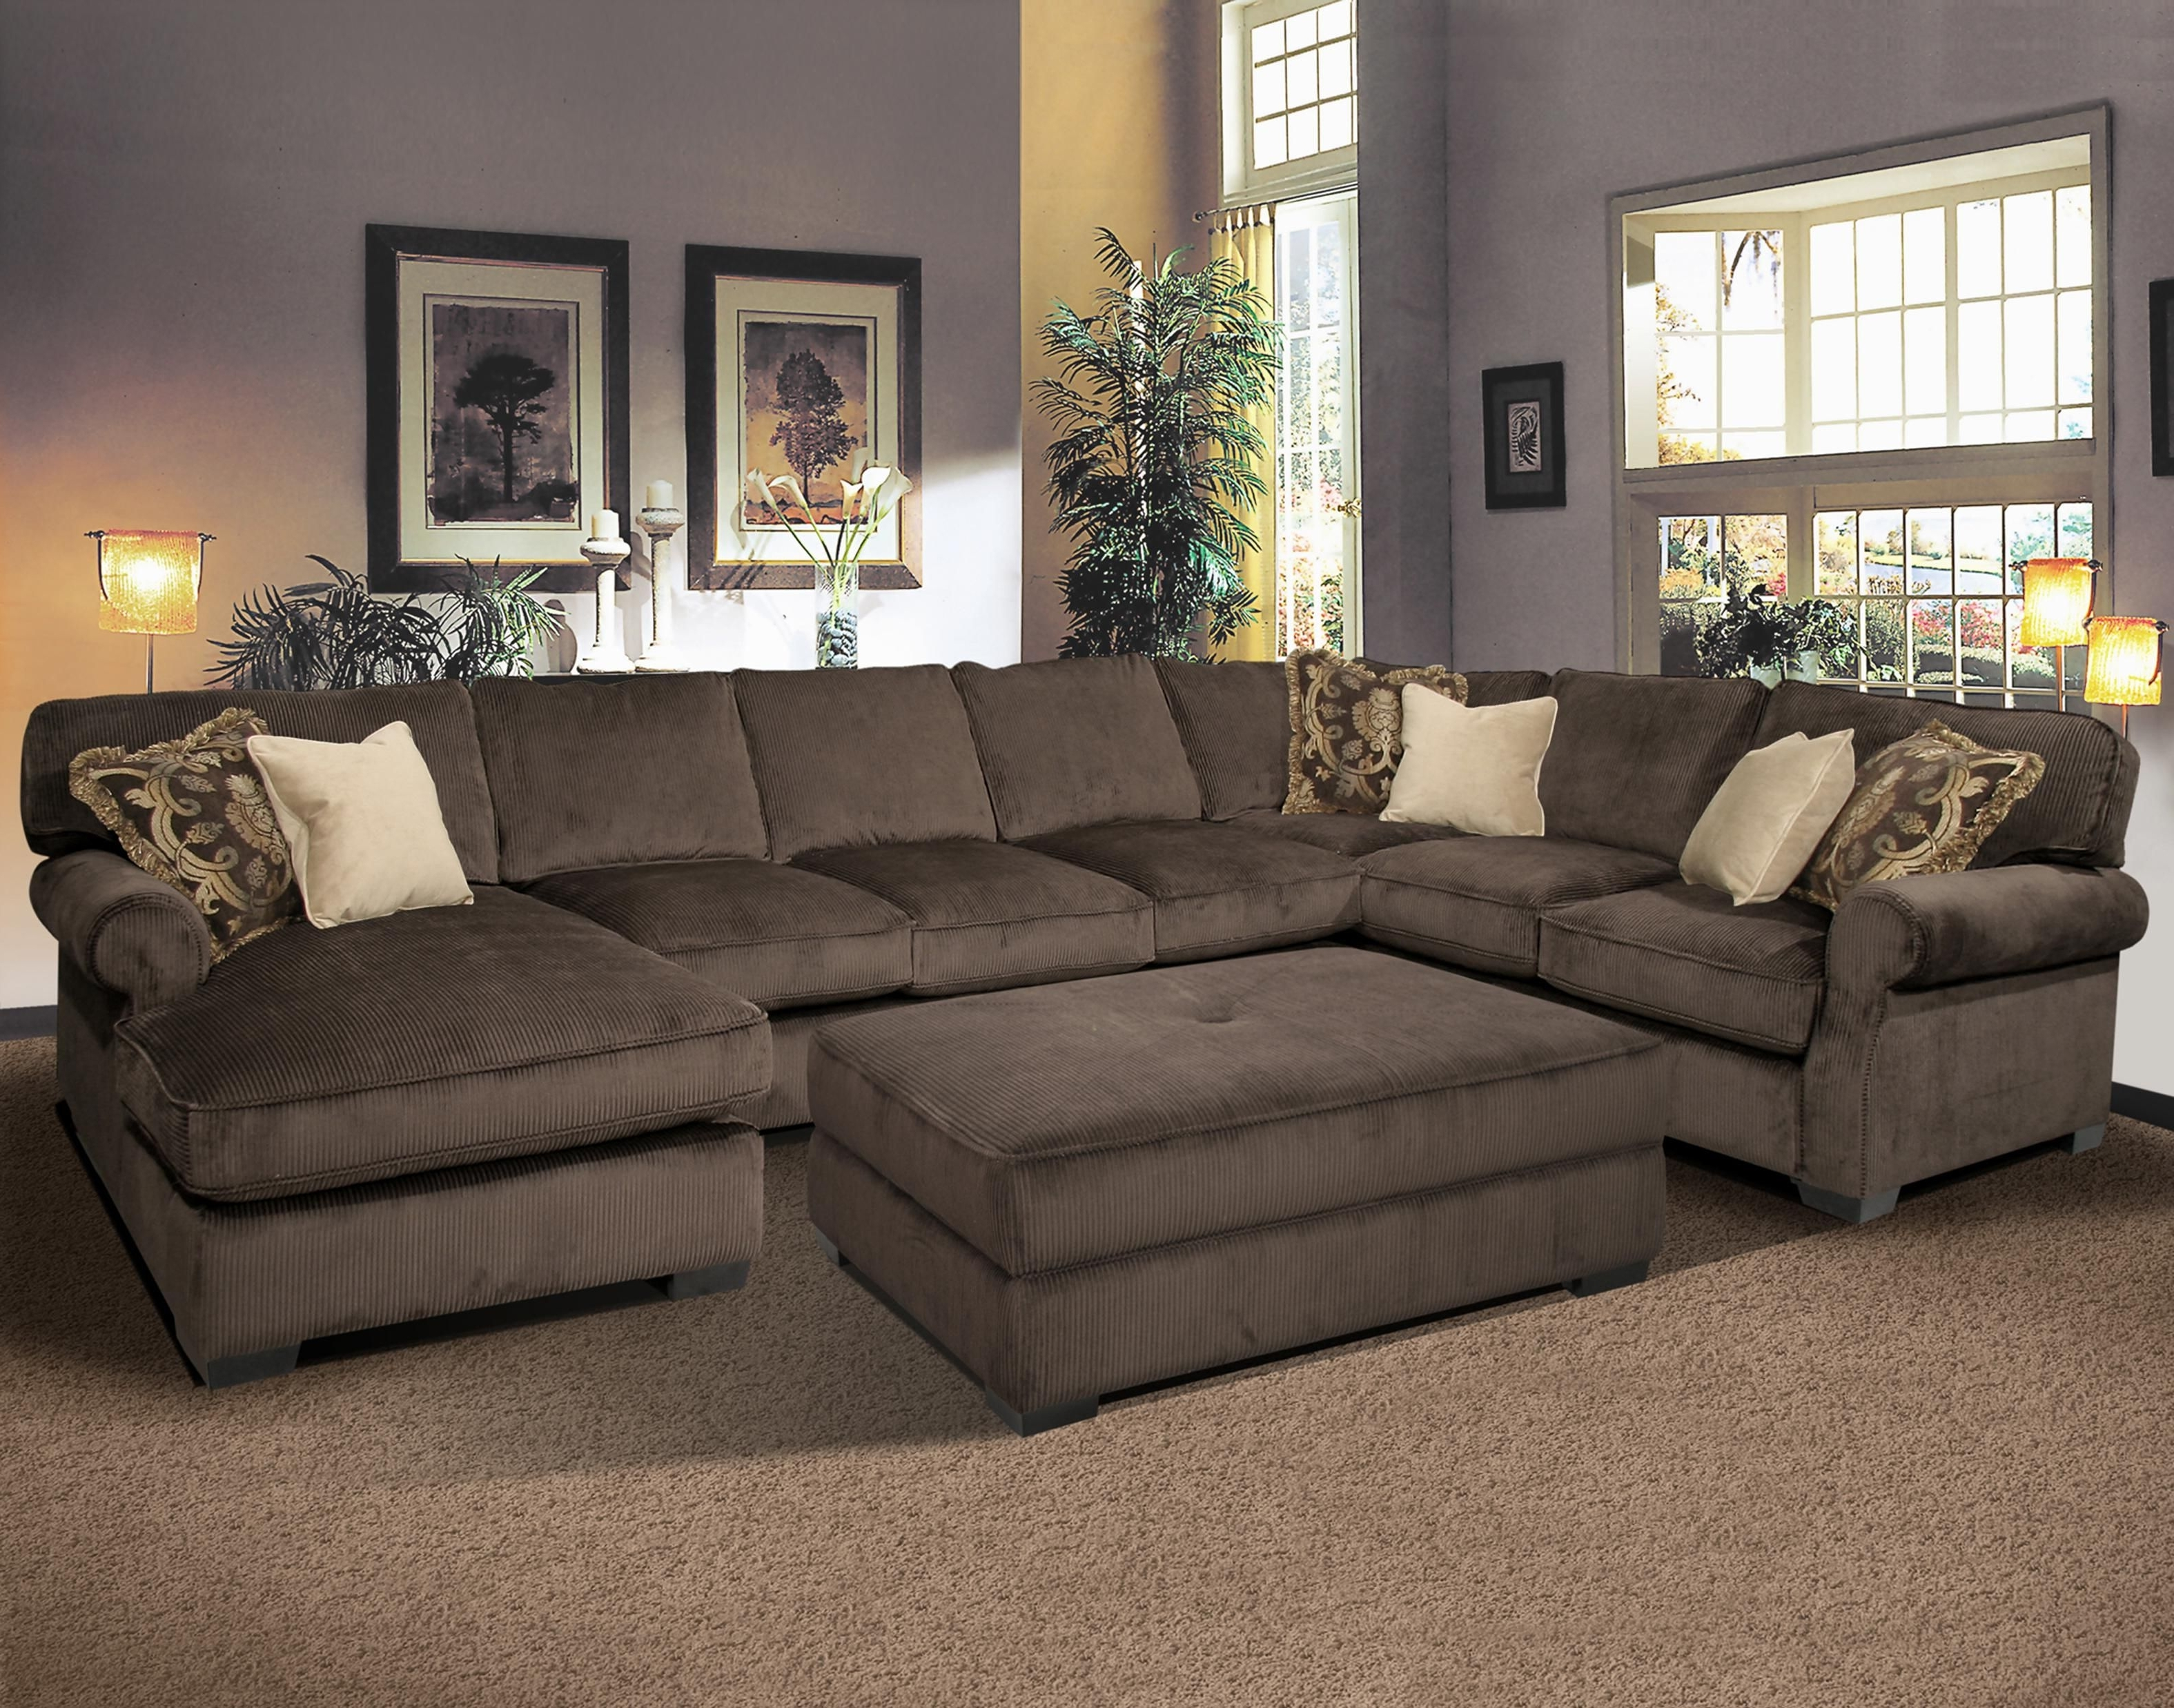 Famous Big And Comfy Grand Island Large, 7 Seat Sectional Sofa With Right Inside Large Sectional Sofas (View 4 of 20)